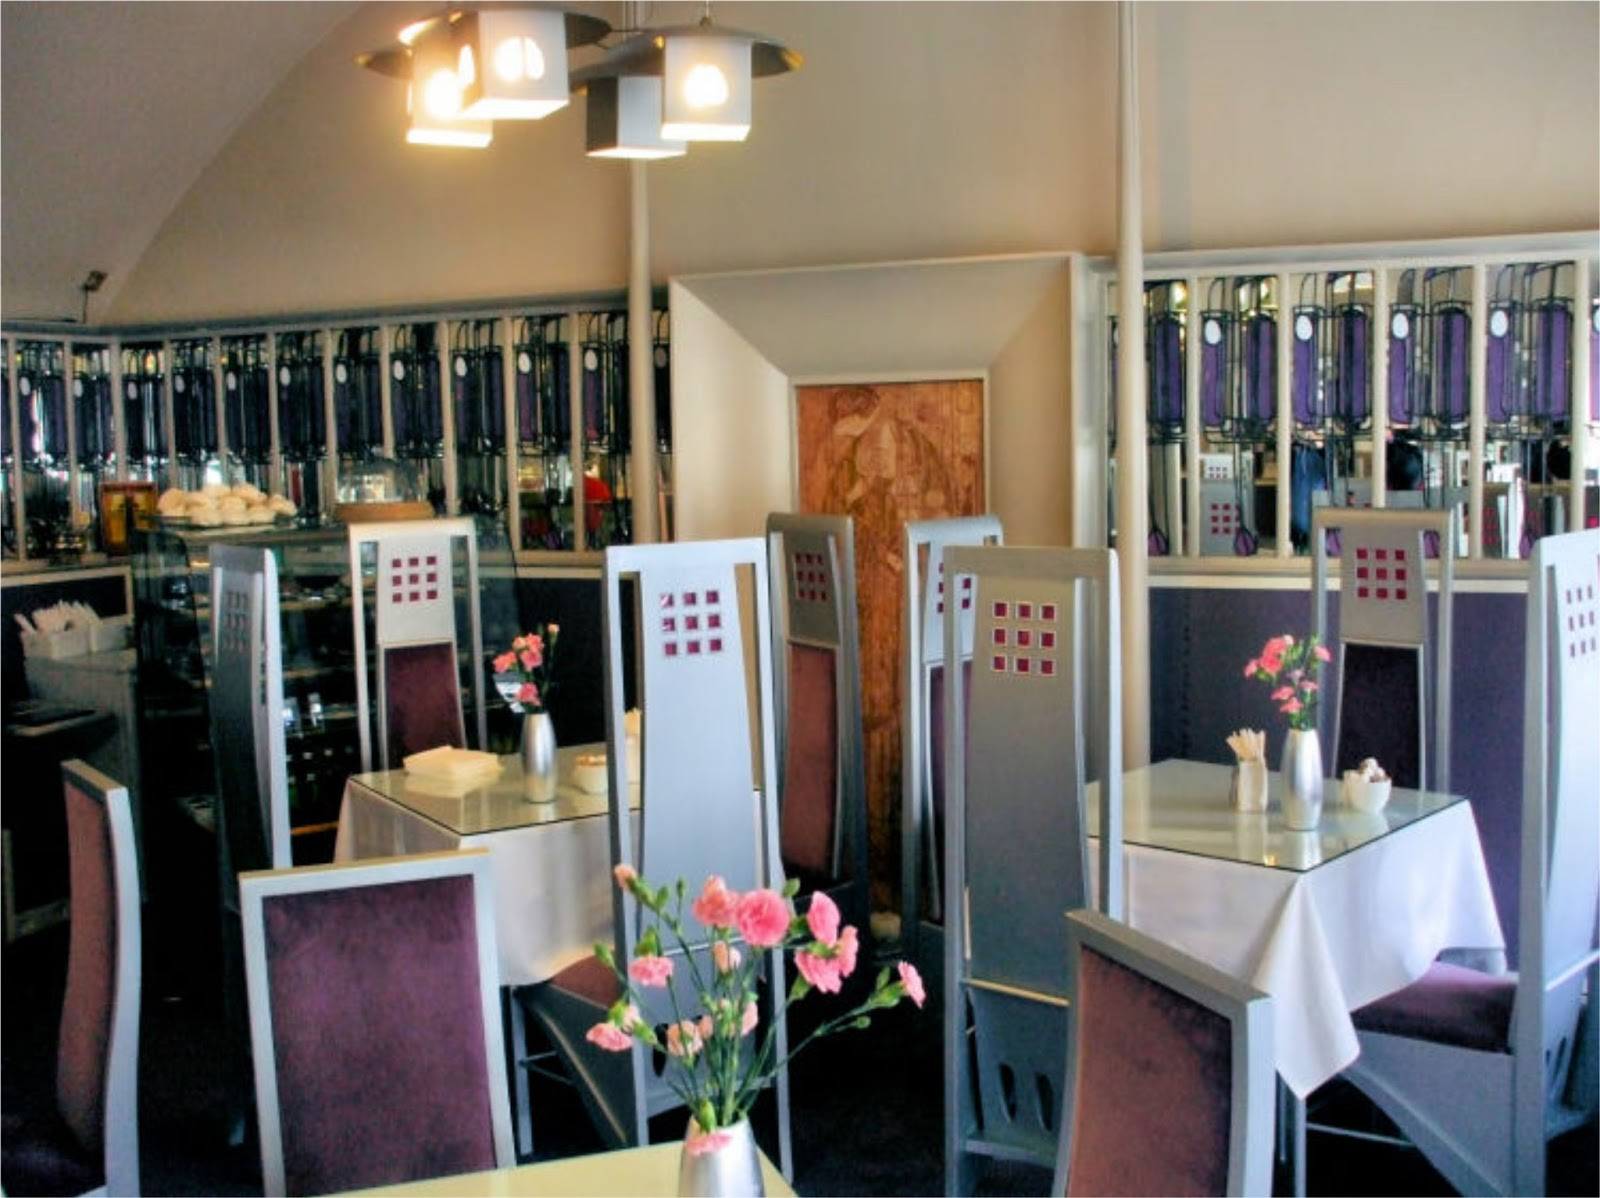 Charles Rennie Mackintosh Willow Chair Outdoor Chairs Target I Tearooms.